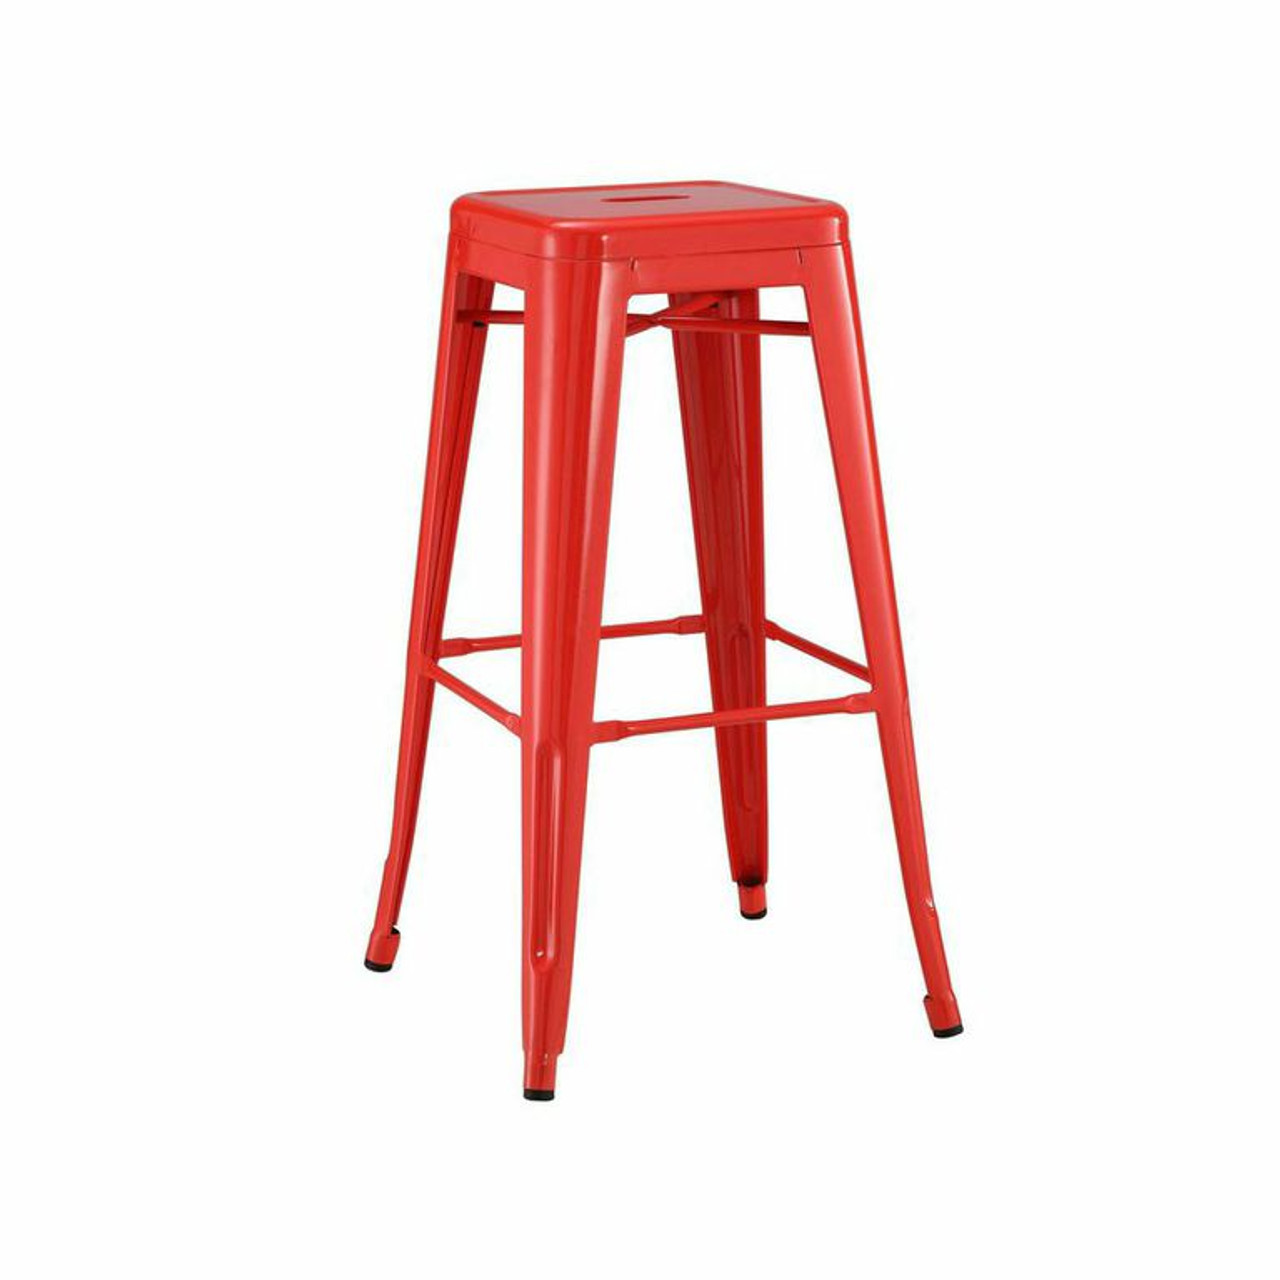 58a37614137 French Industrial style Metal BarStools in RED